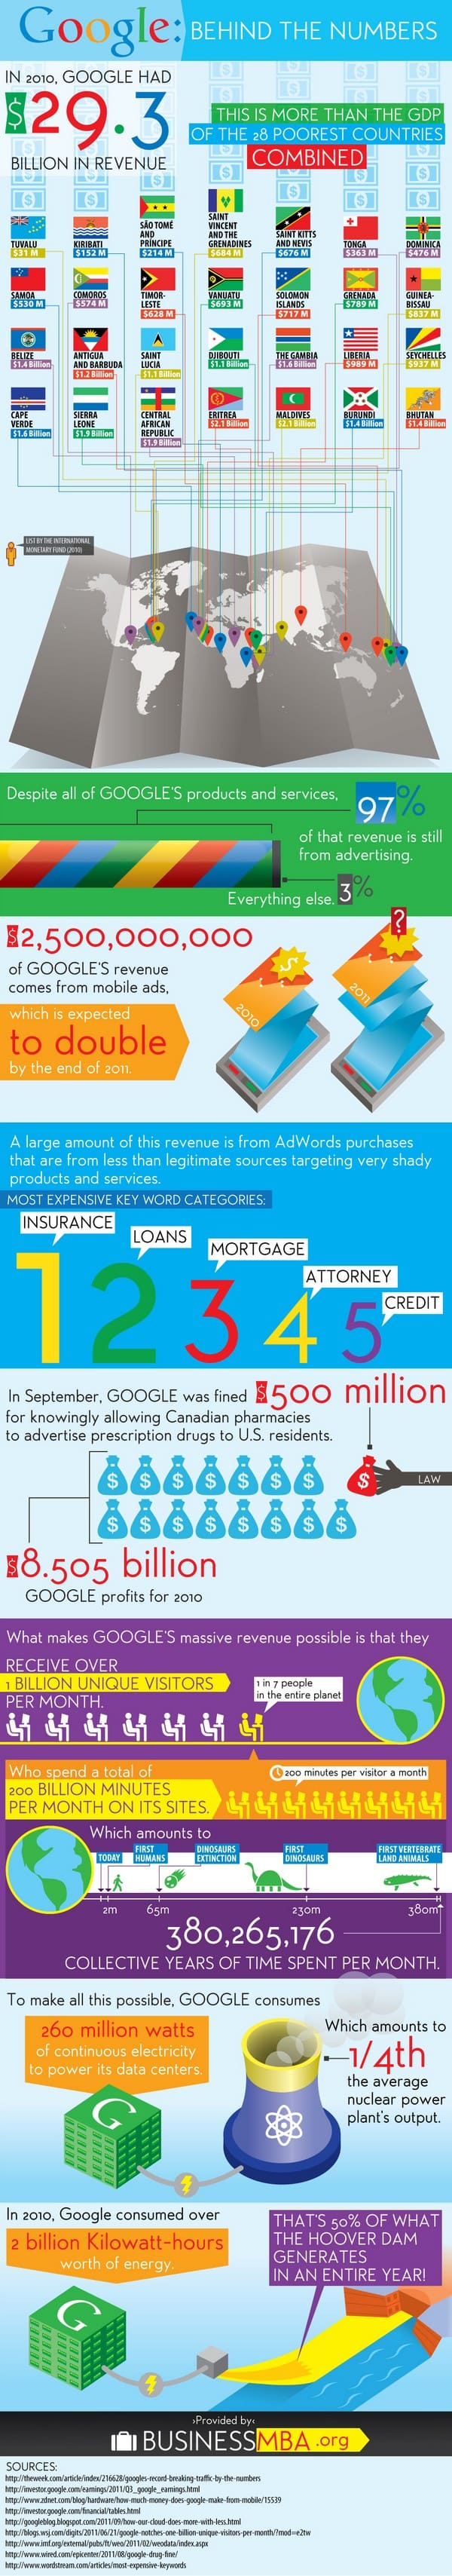 Google Behind The Numbers Infographic